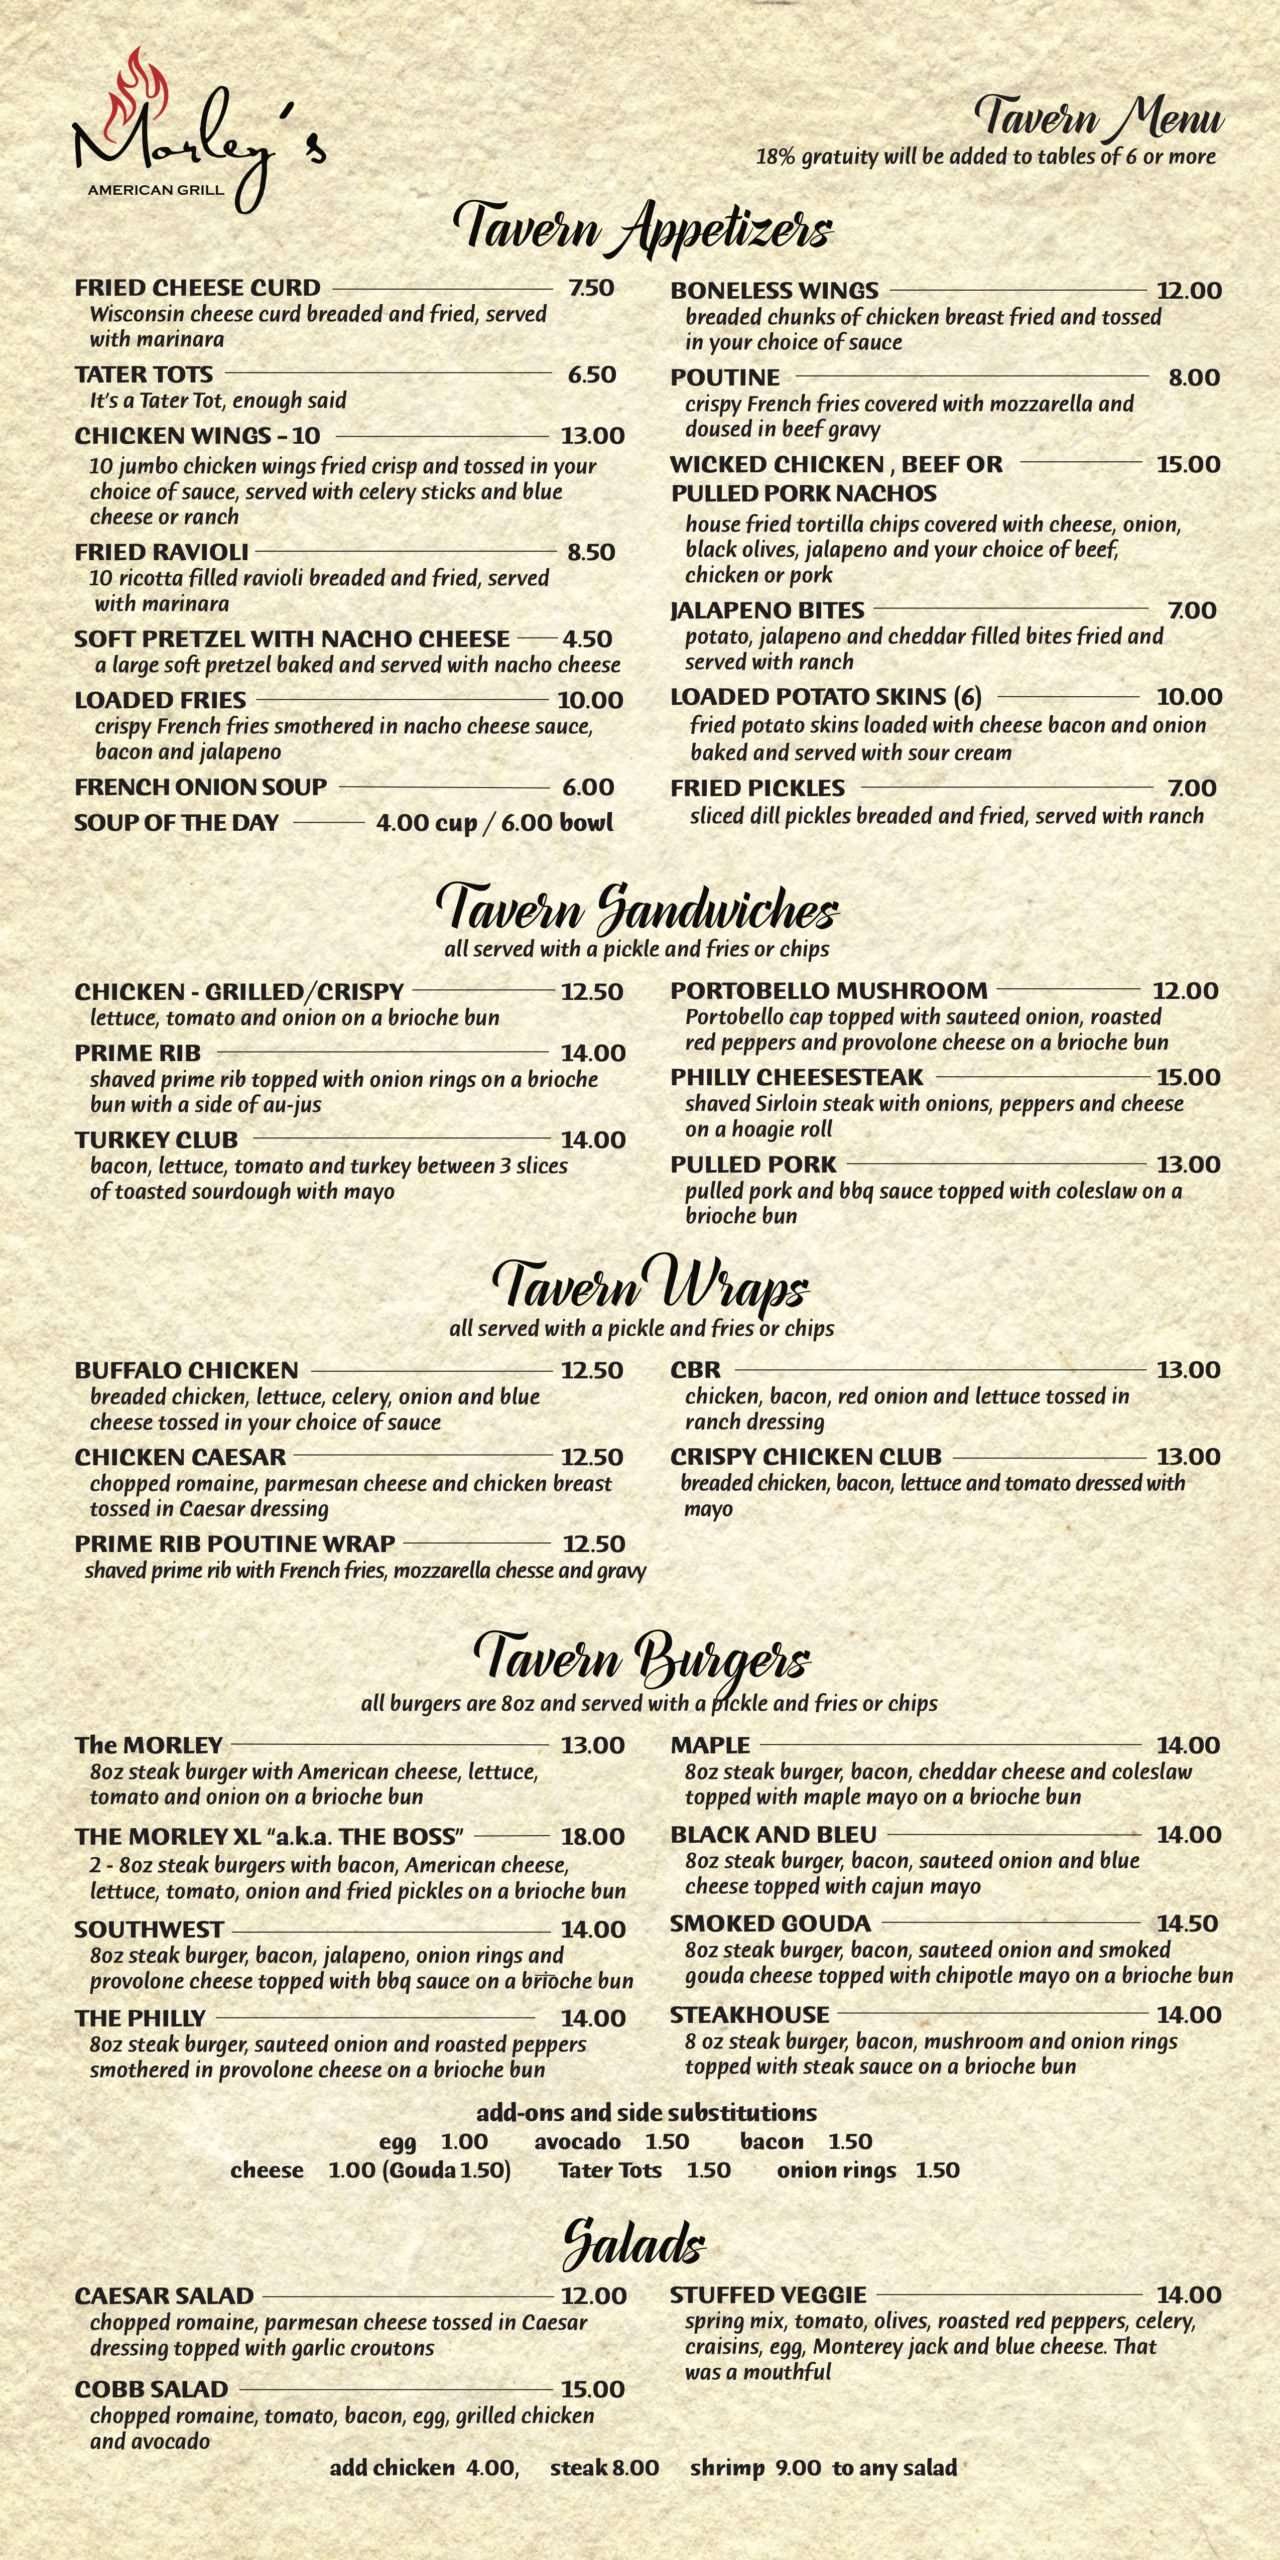 morleys tavern menu 10_14_20b